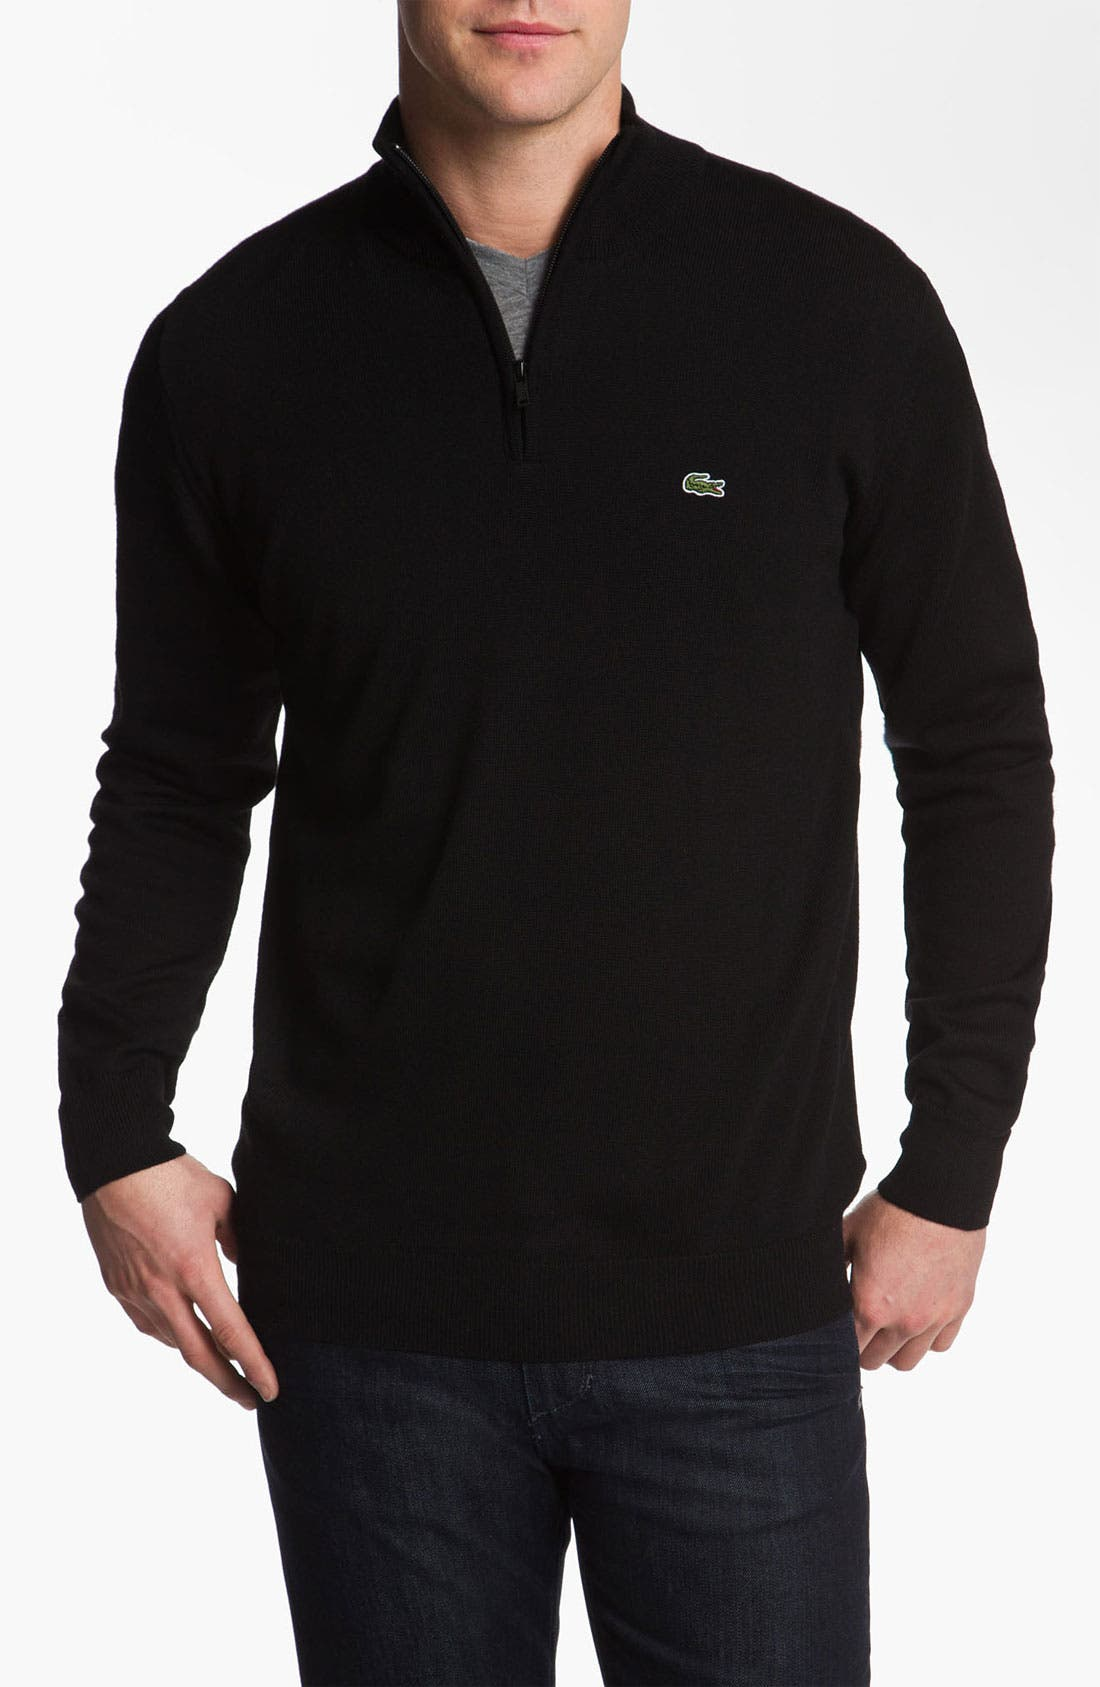 Main Image - Lacoste Lambswool Mock Neck Sweater